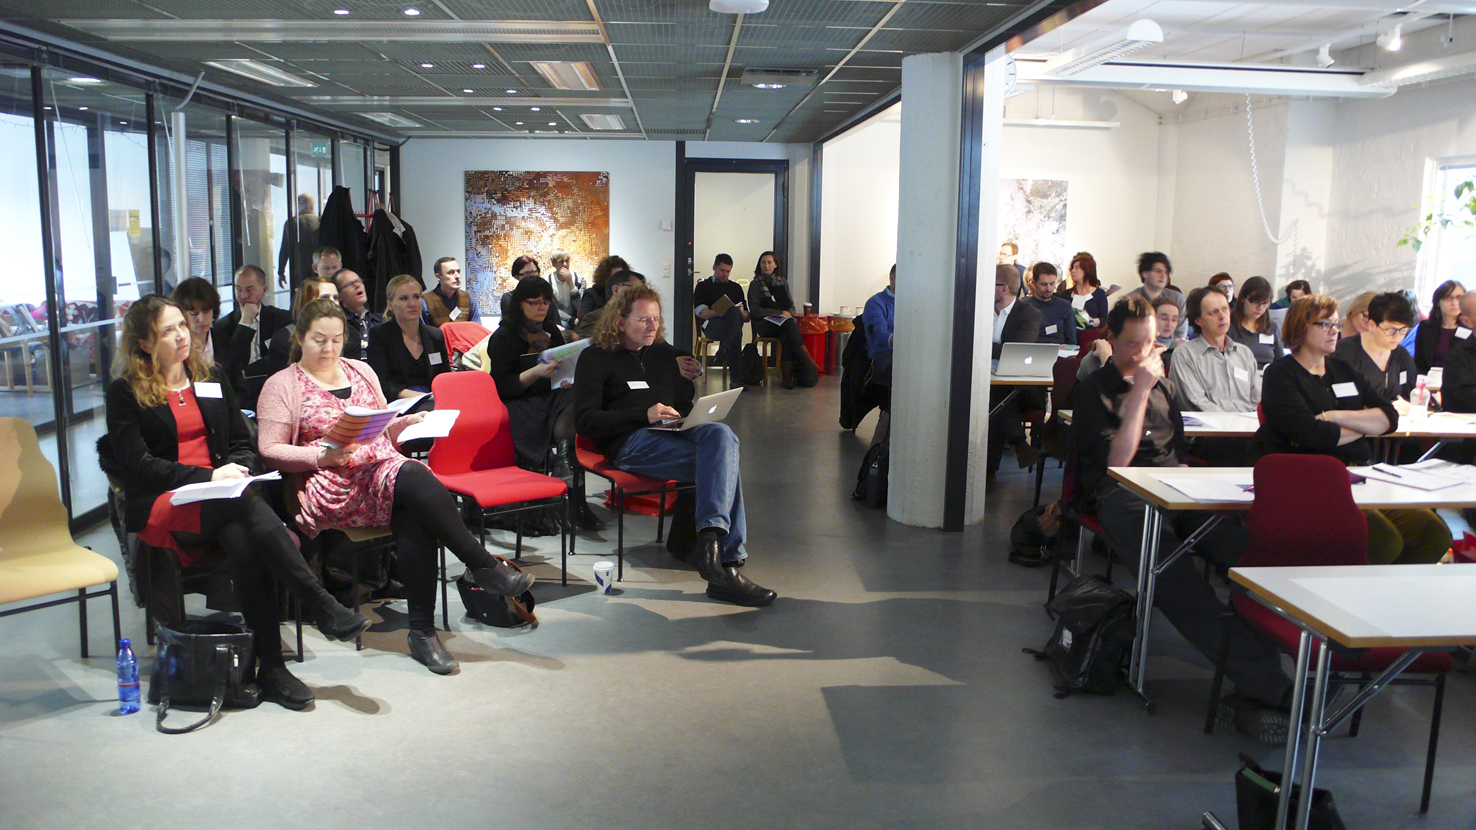 Audience at MediaFactory spaces